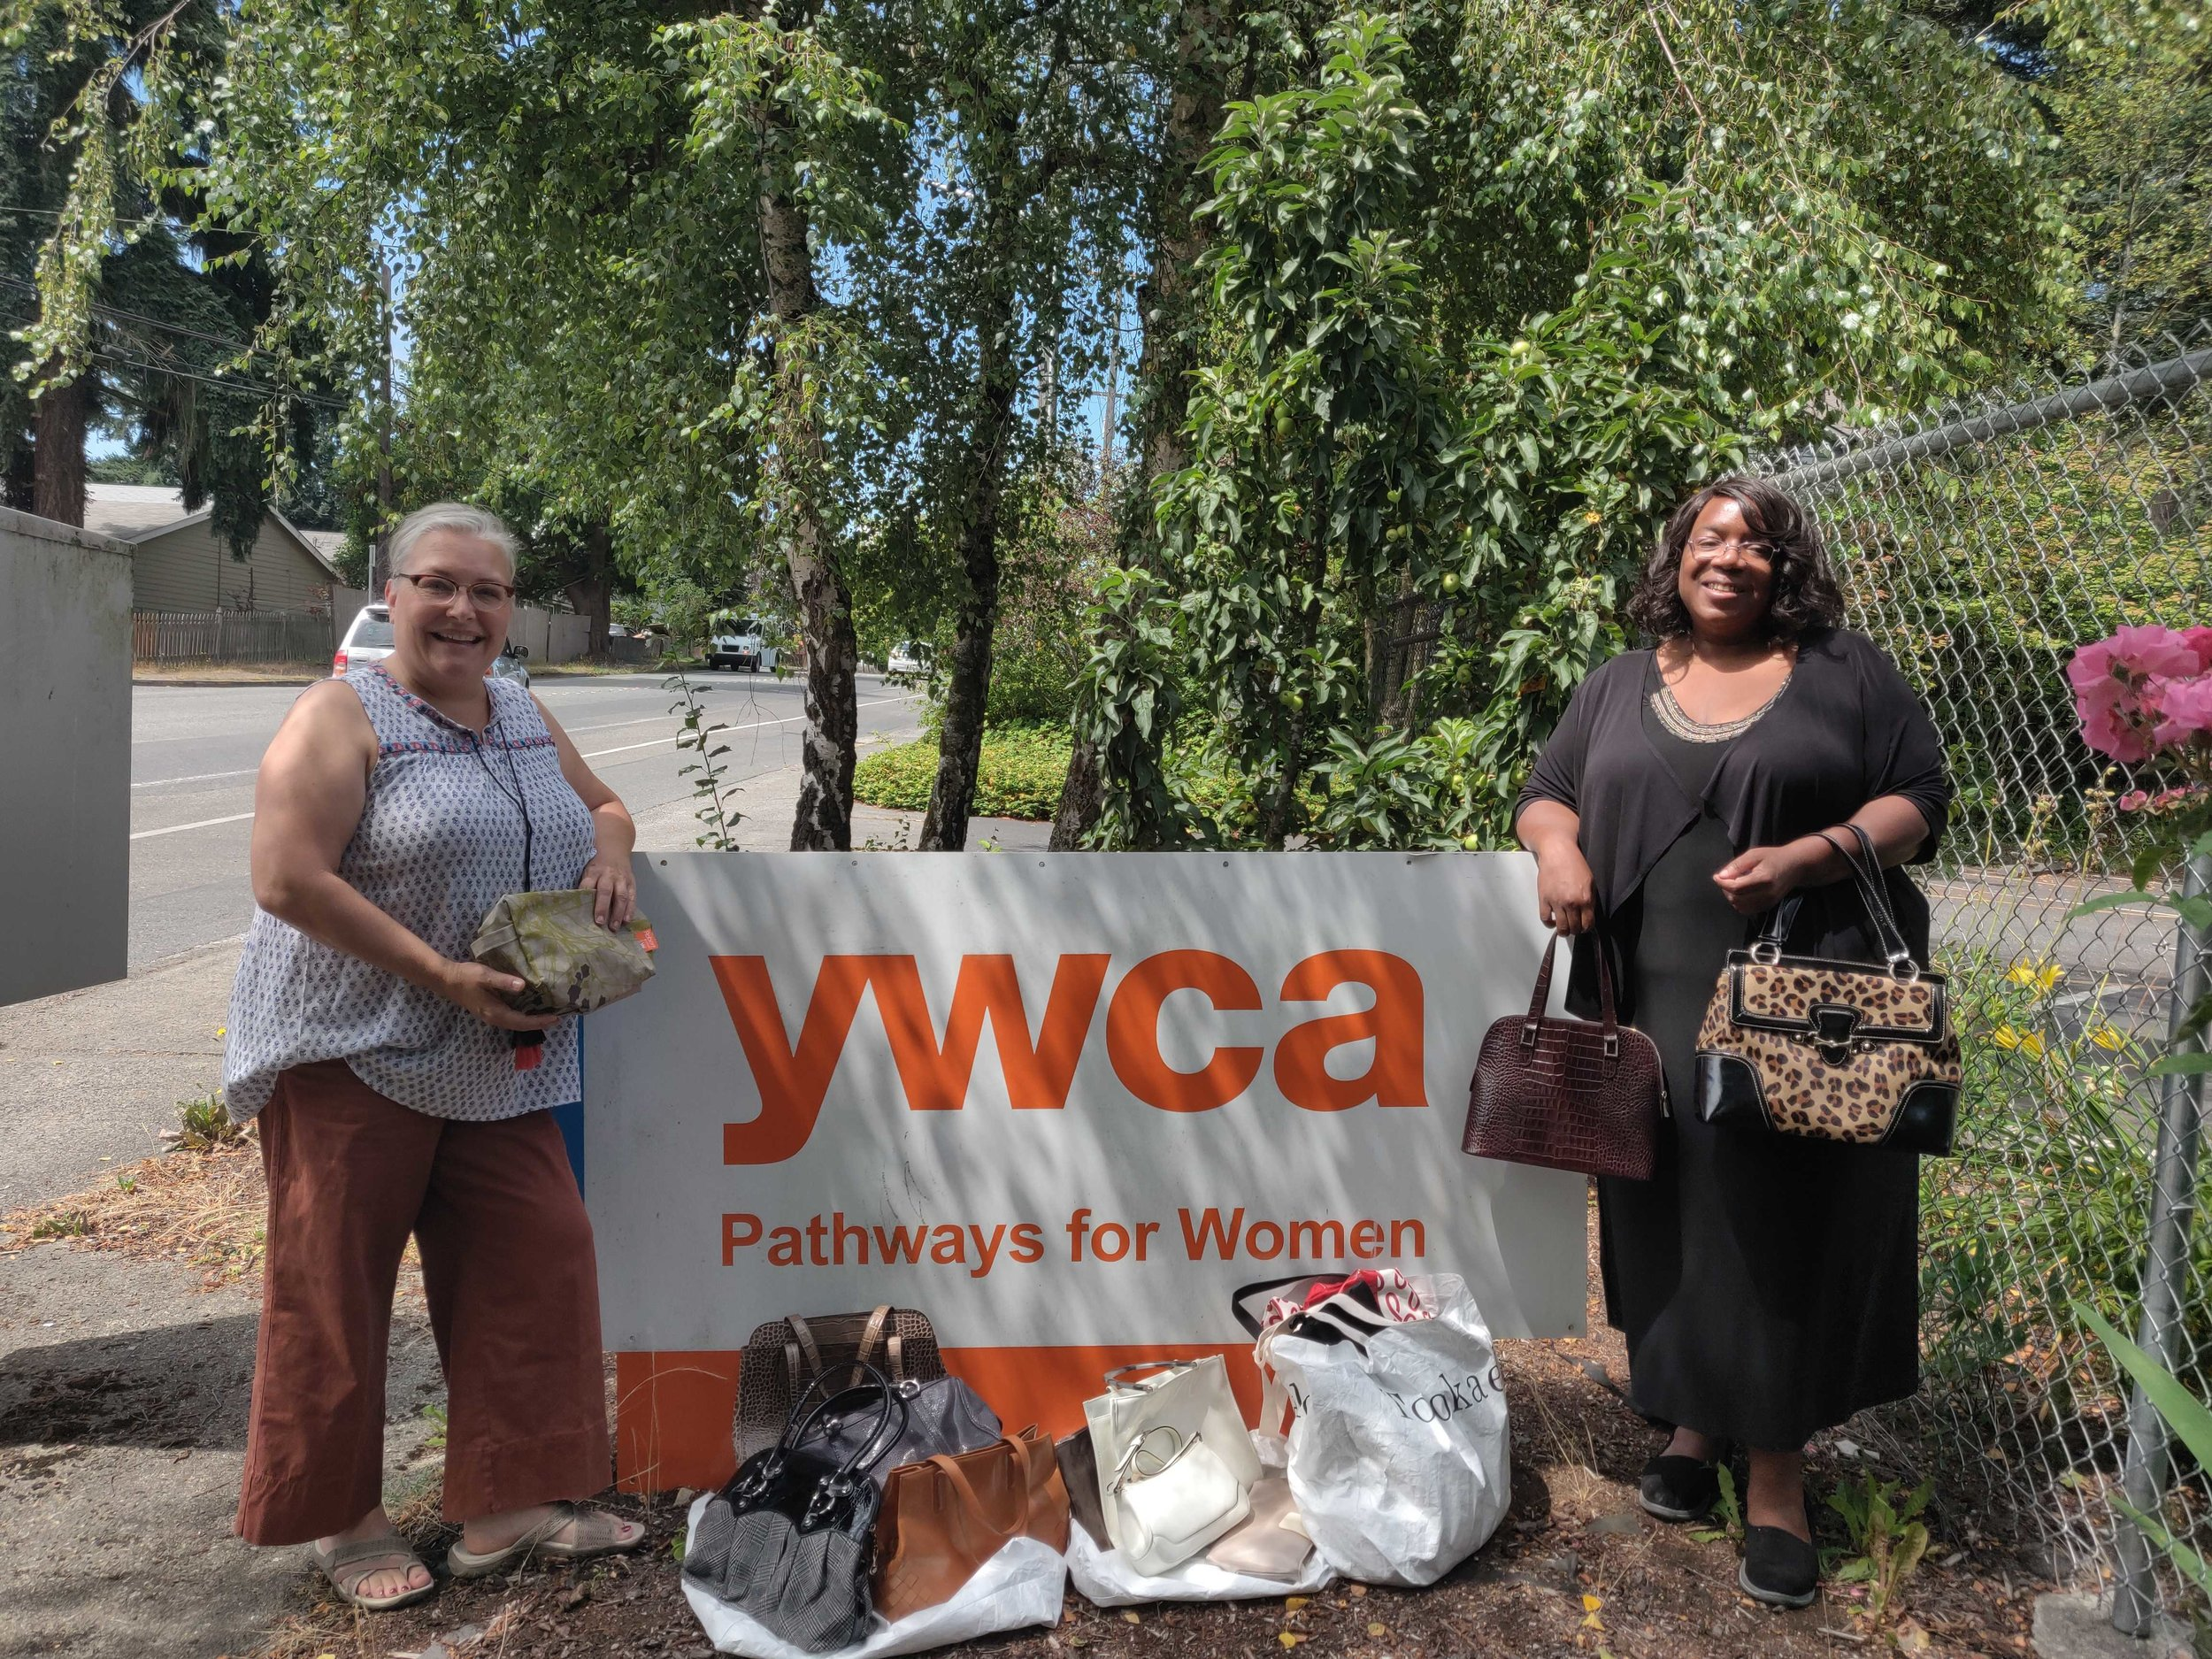 Erika Larimer, Koné Consulting and  Alicia Crank,  YWCA Corporate Relations Officer and  candidate for Edmonds City Council  meet at YWCA's temporary housing site to exchange donated bags. The site features 28 apartments, a small playground and garden and gives women and their children a safe haven while awaiting permanent housing.